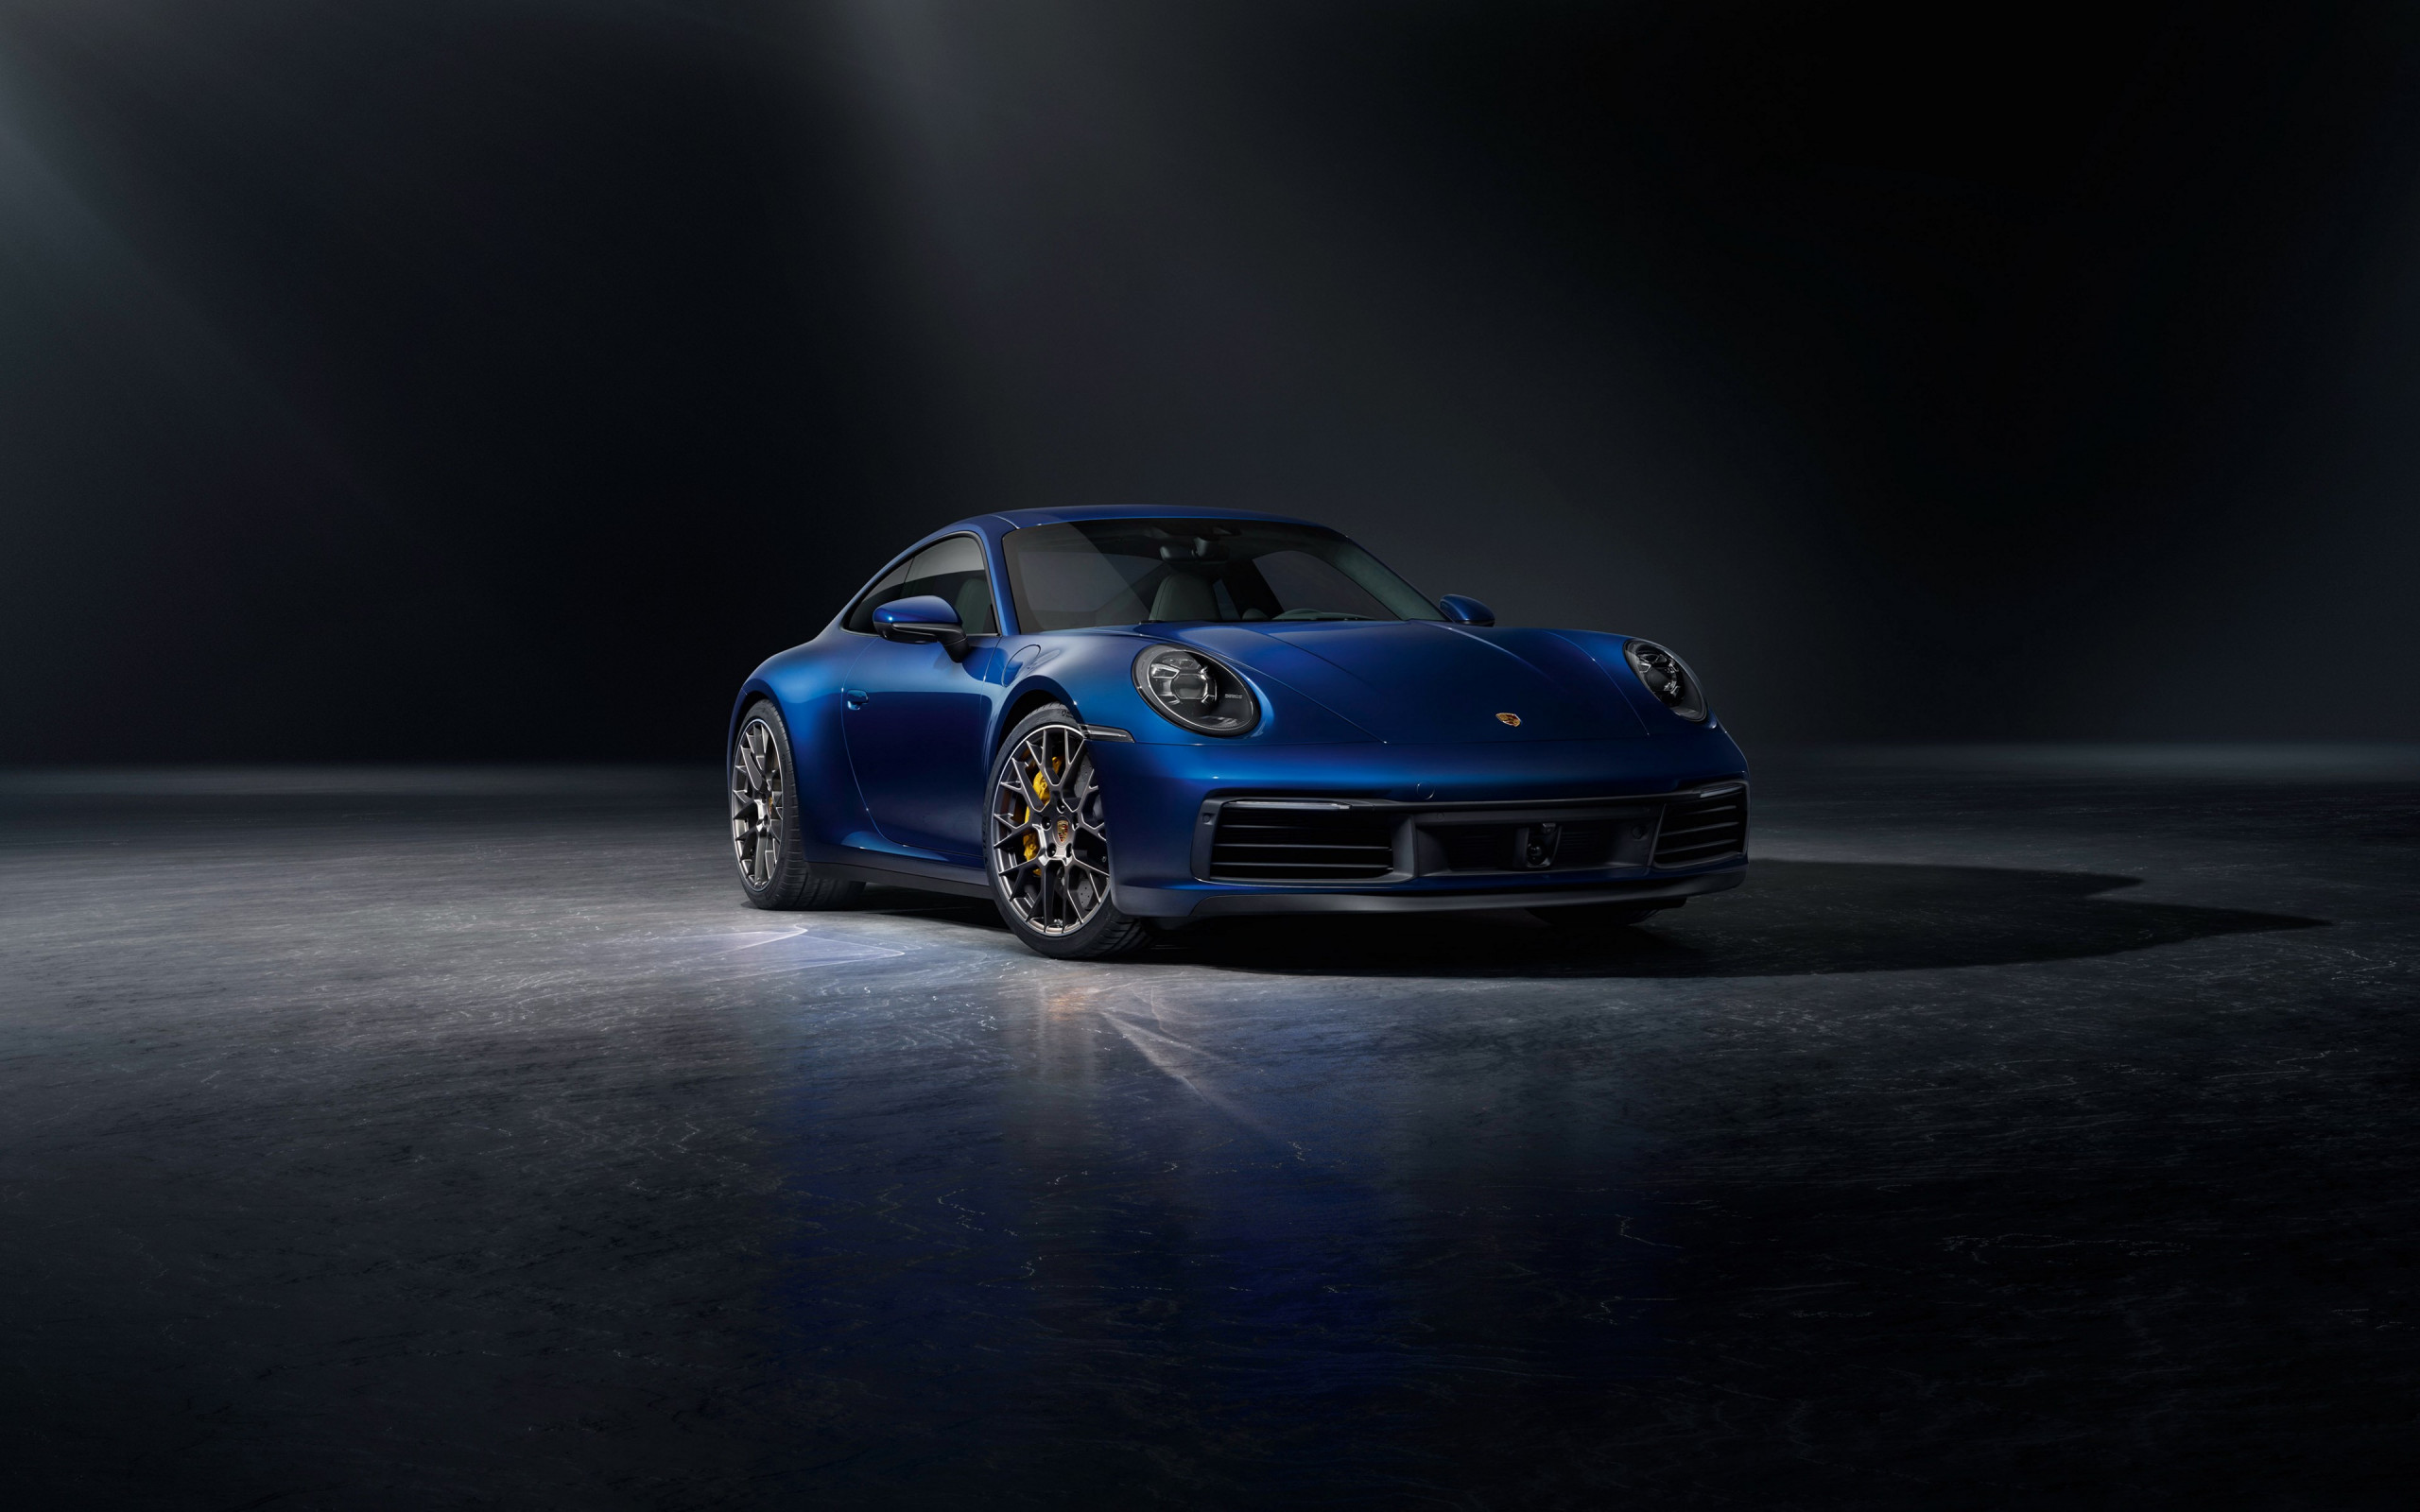 Porsche 911 Carrera 2020 4S wallpaper 2560x1600